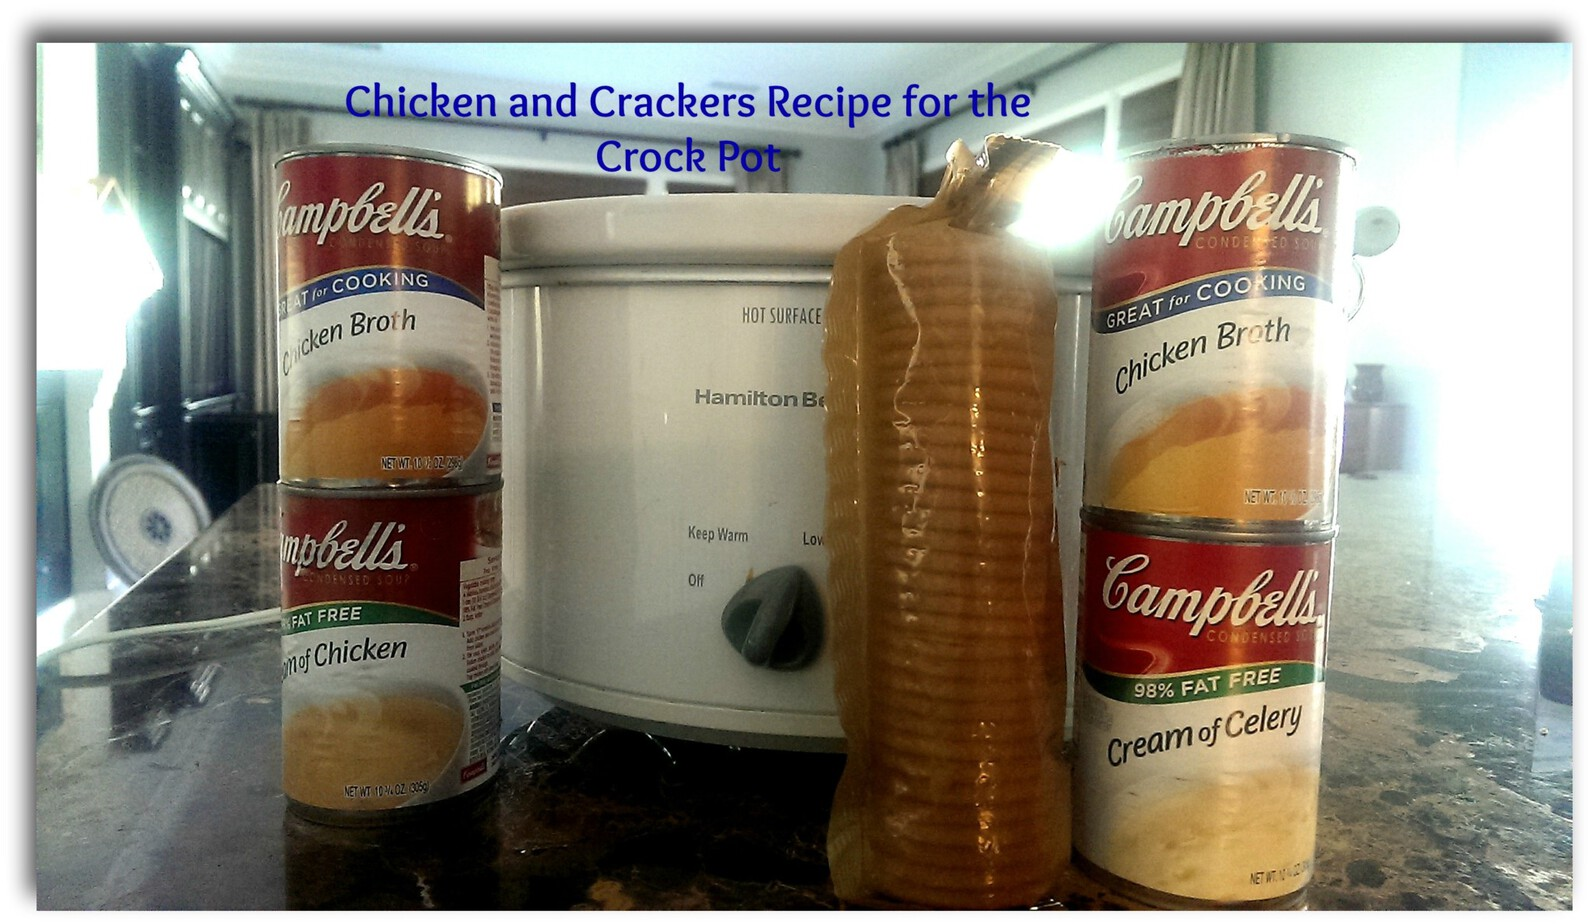 Shredded Chicken and Crackers Recipe for the Crock Pot